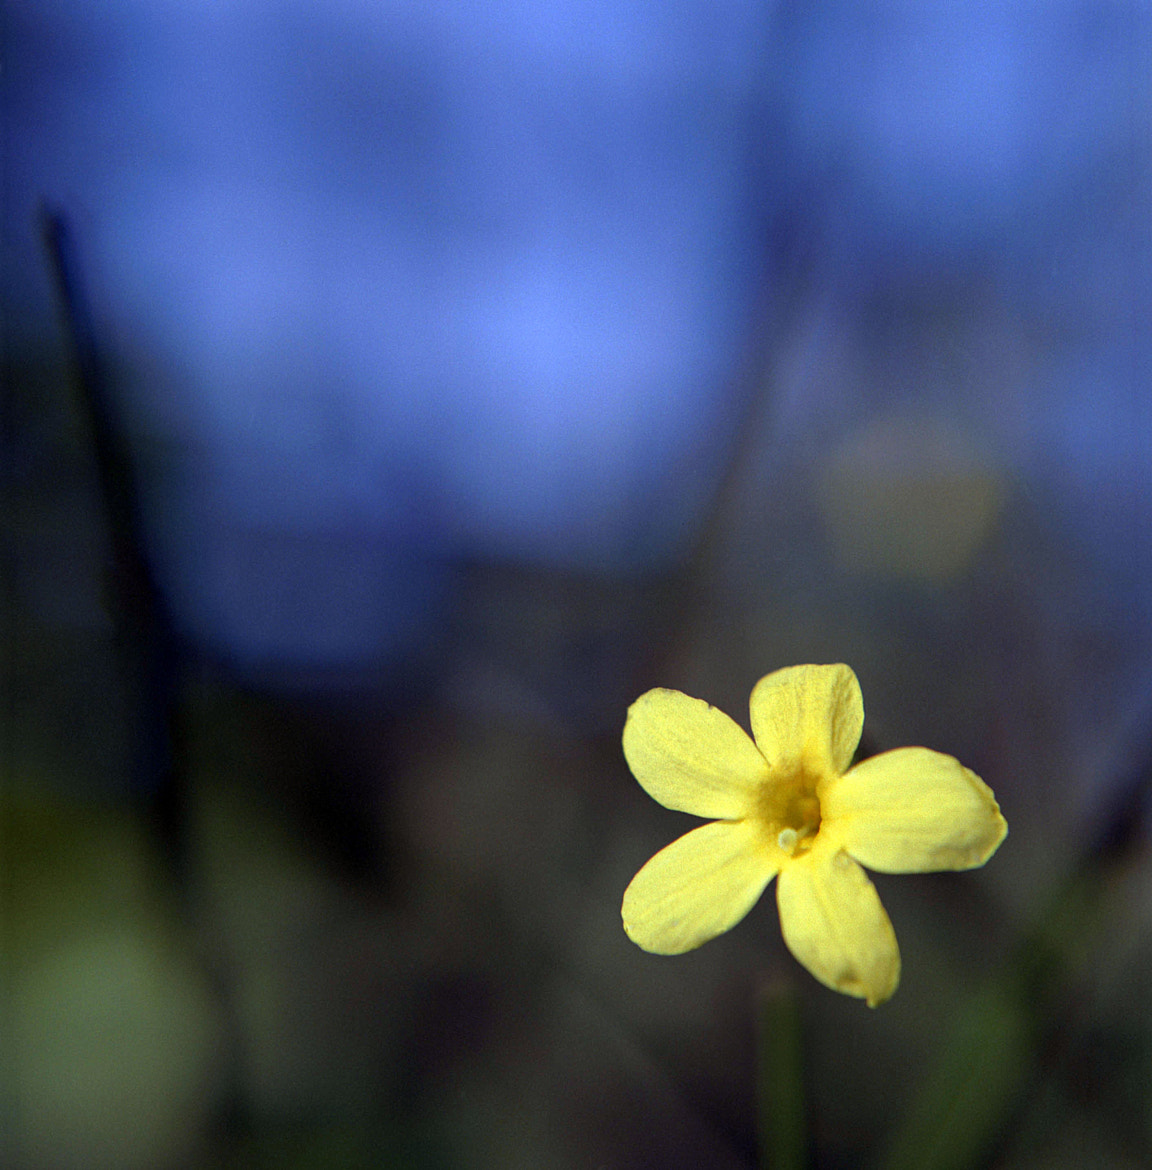 Photograph Yellow and Alone by Becca Gulliver on 500px